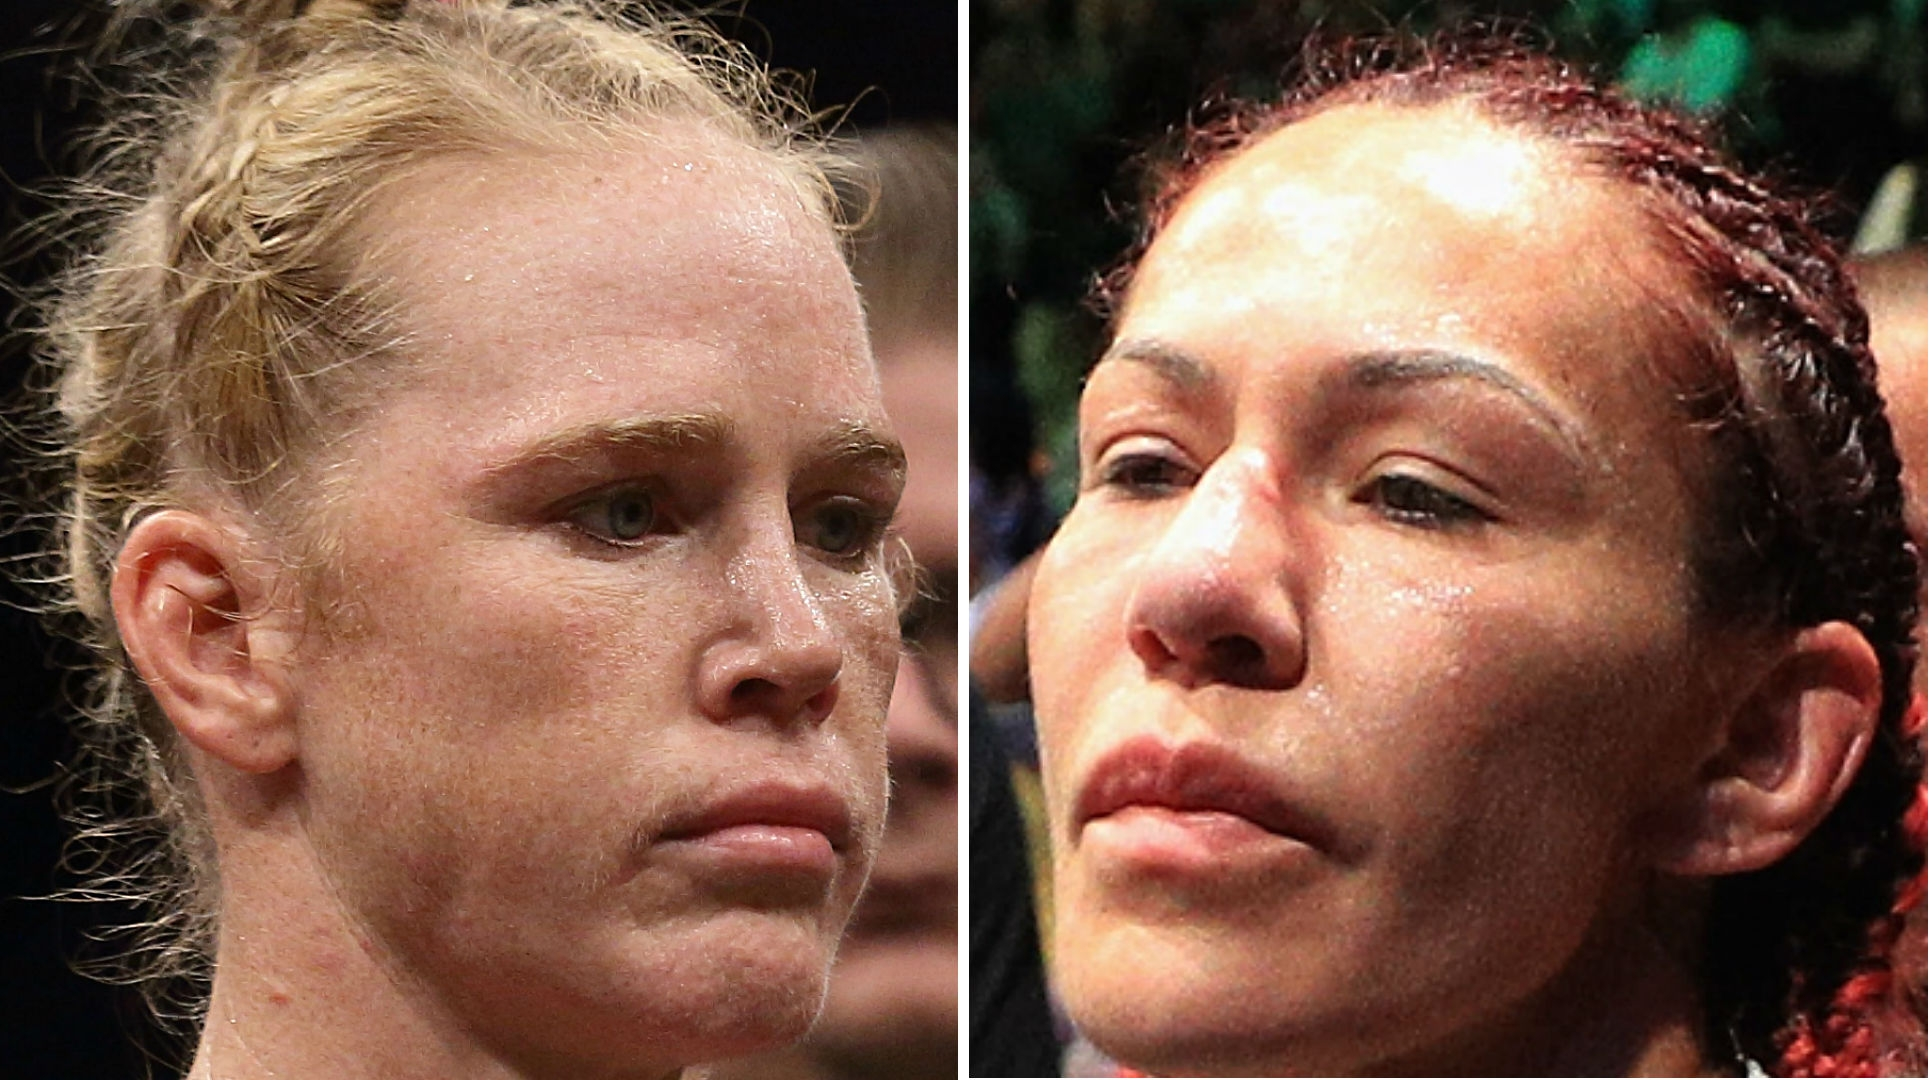 UFC 219 Cyborg vs. Holm outcomes: Cris Cyborg pummels Holly Holm to retain title